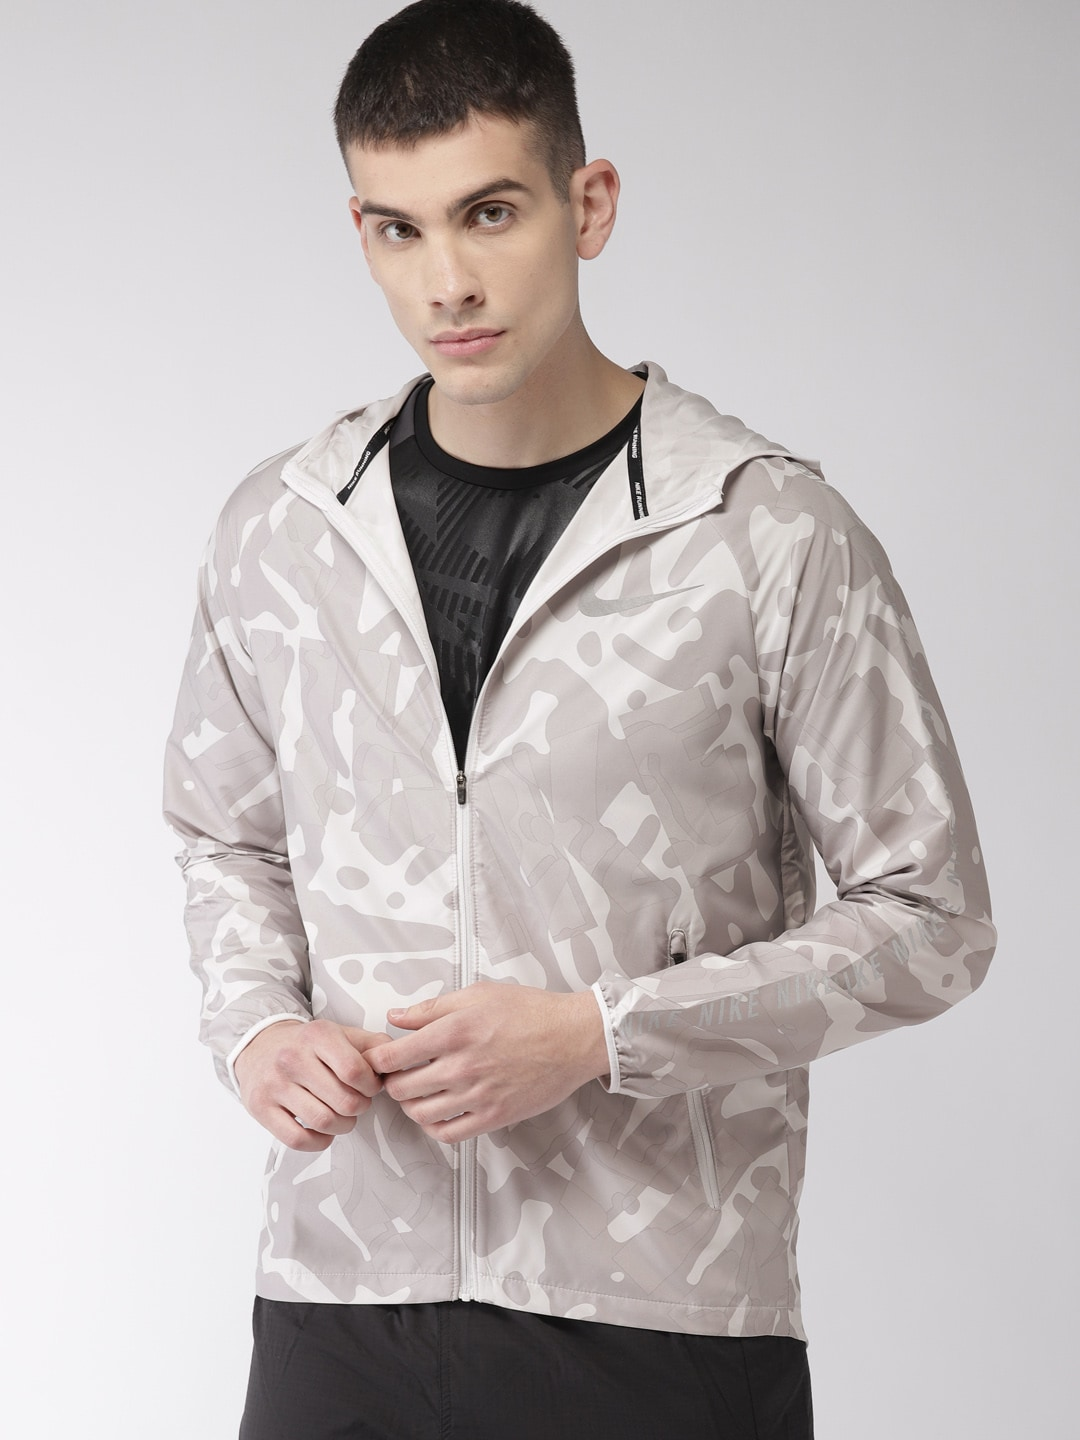 bc92669bdd3e3d Nike Polyester Jackets - Buy Nike Polyester Jackets online in India